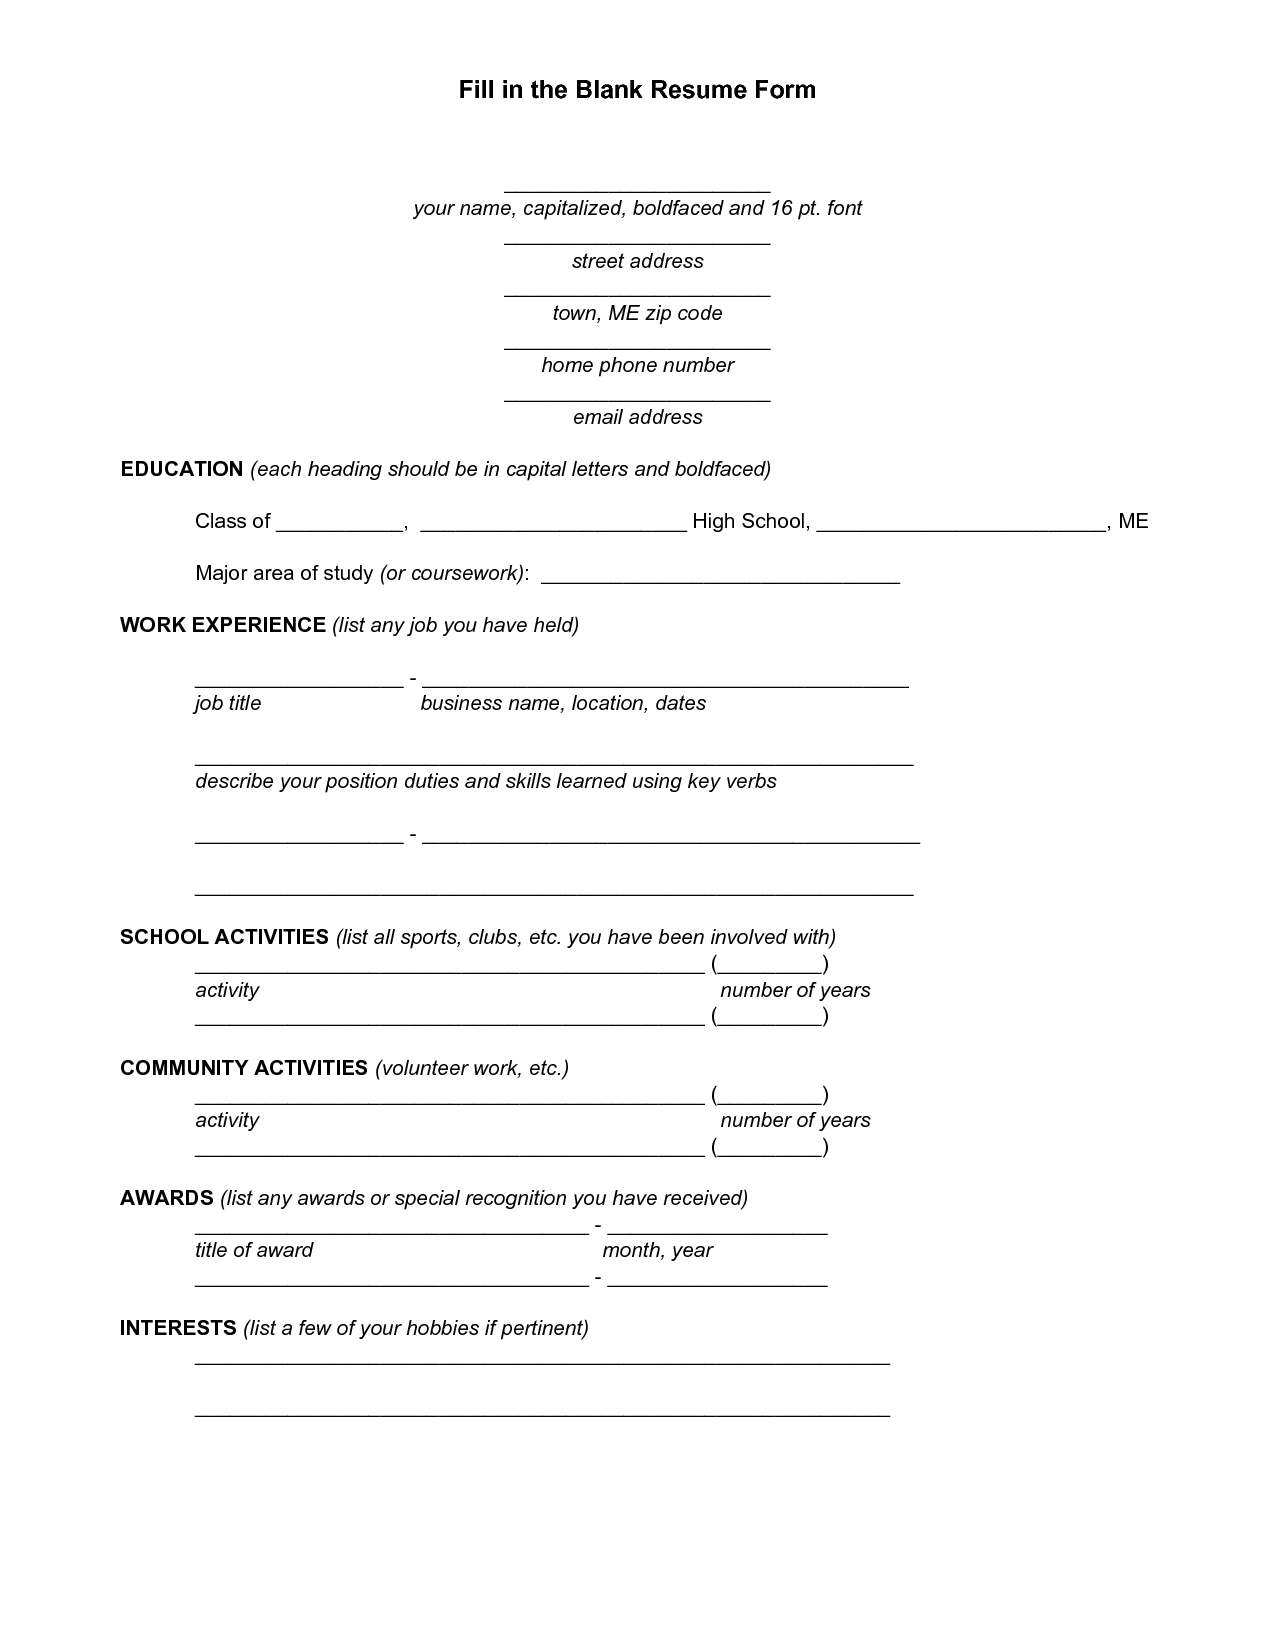 Resume Blank Forms To Fill Out | Fill In The Blank Resume